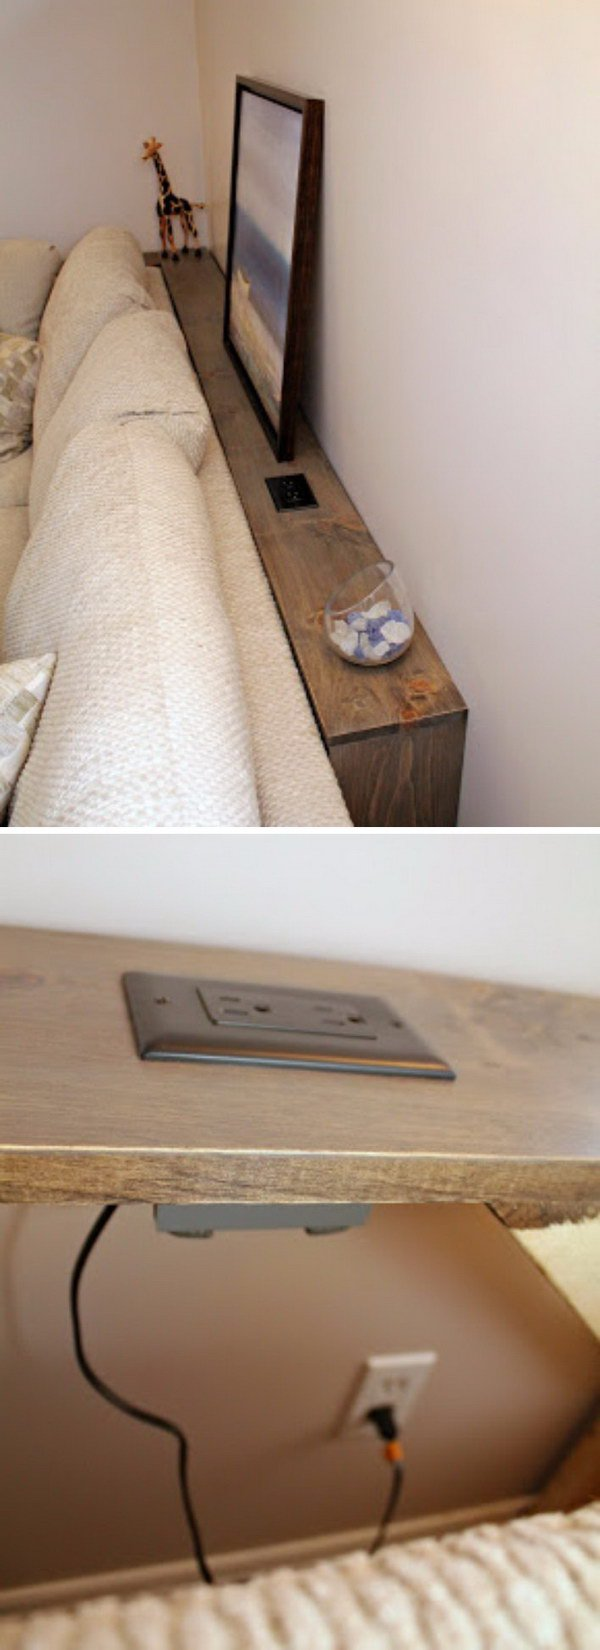 This DIY Table Behind Built-In Outlets Allows You Plug In Your Electronics Easily.